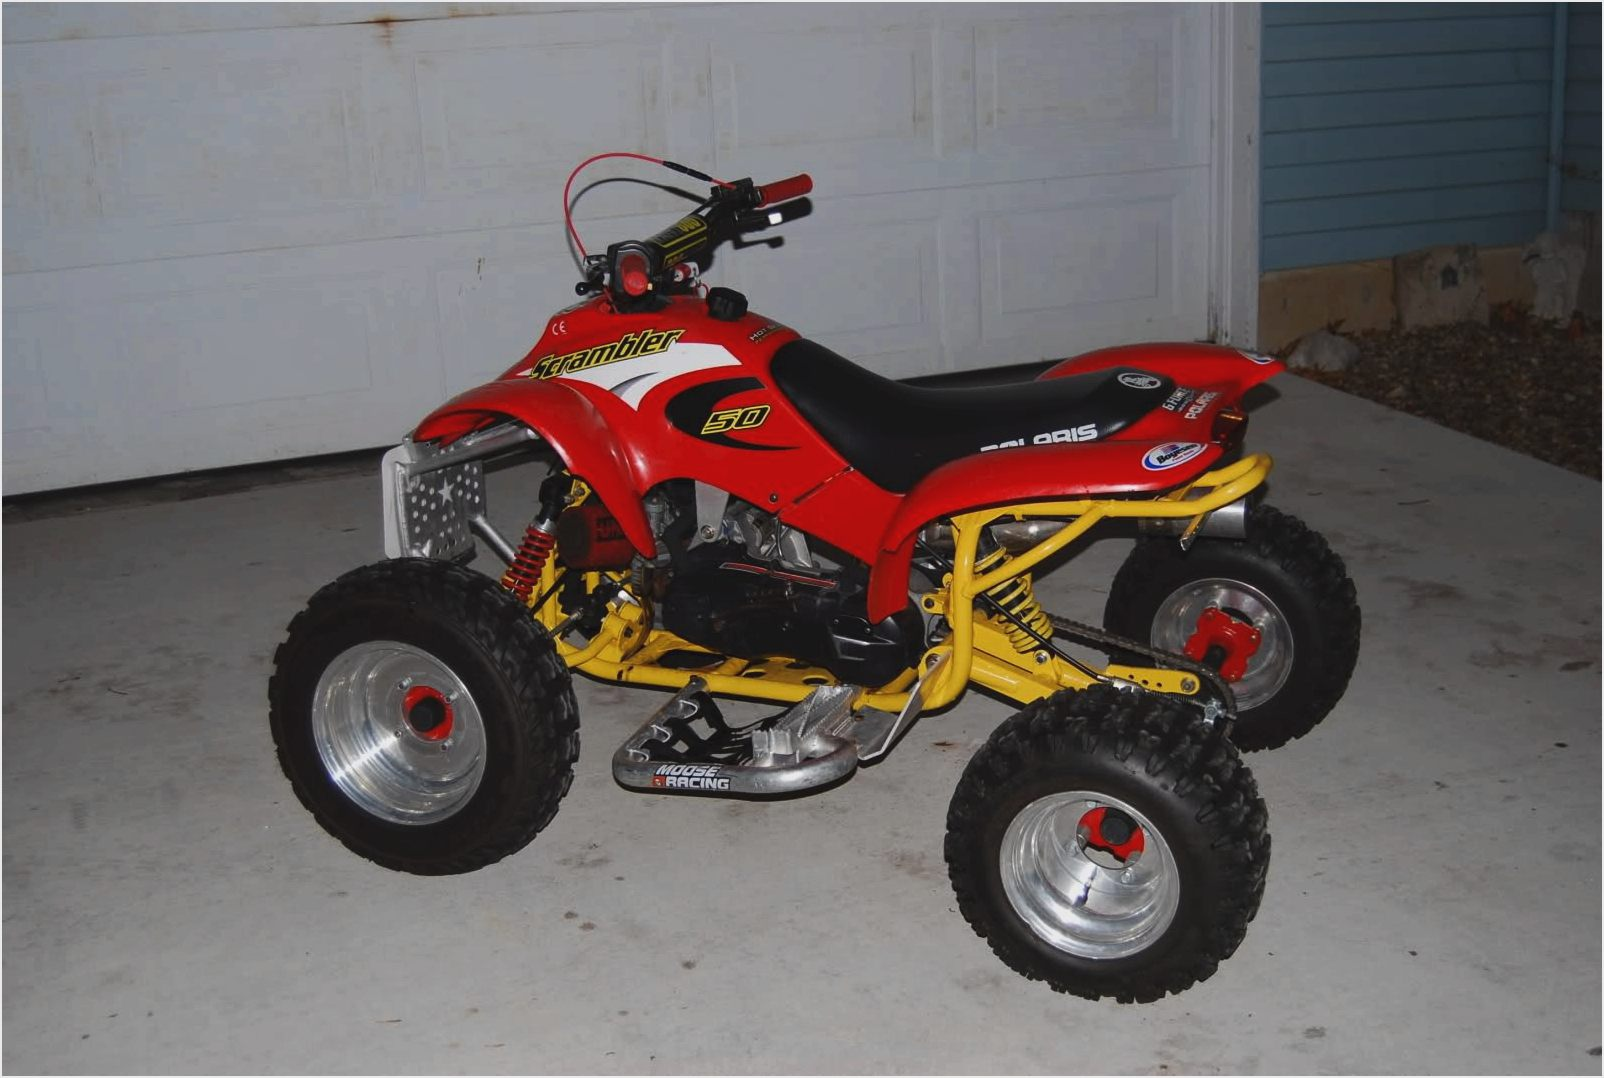 Polaris Scrambler 400 1999 images #120840